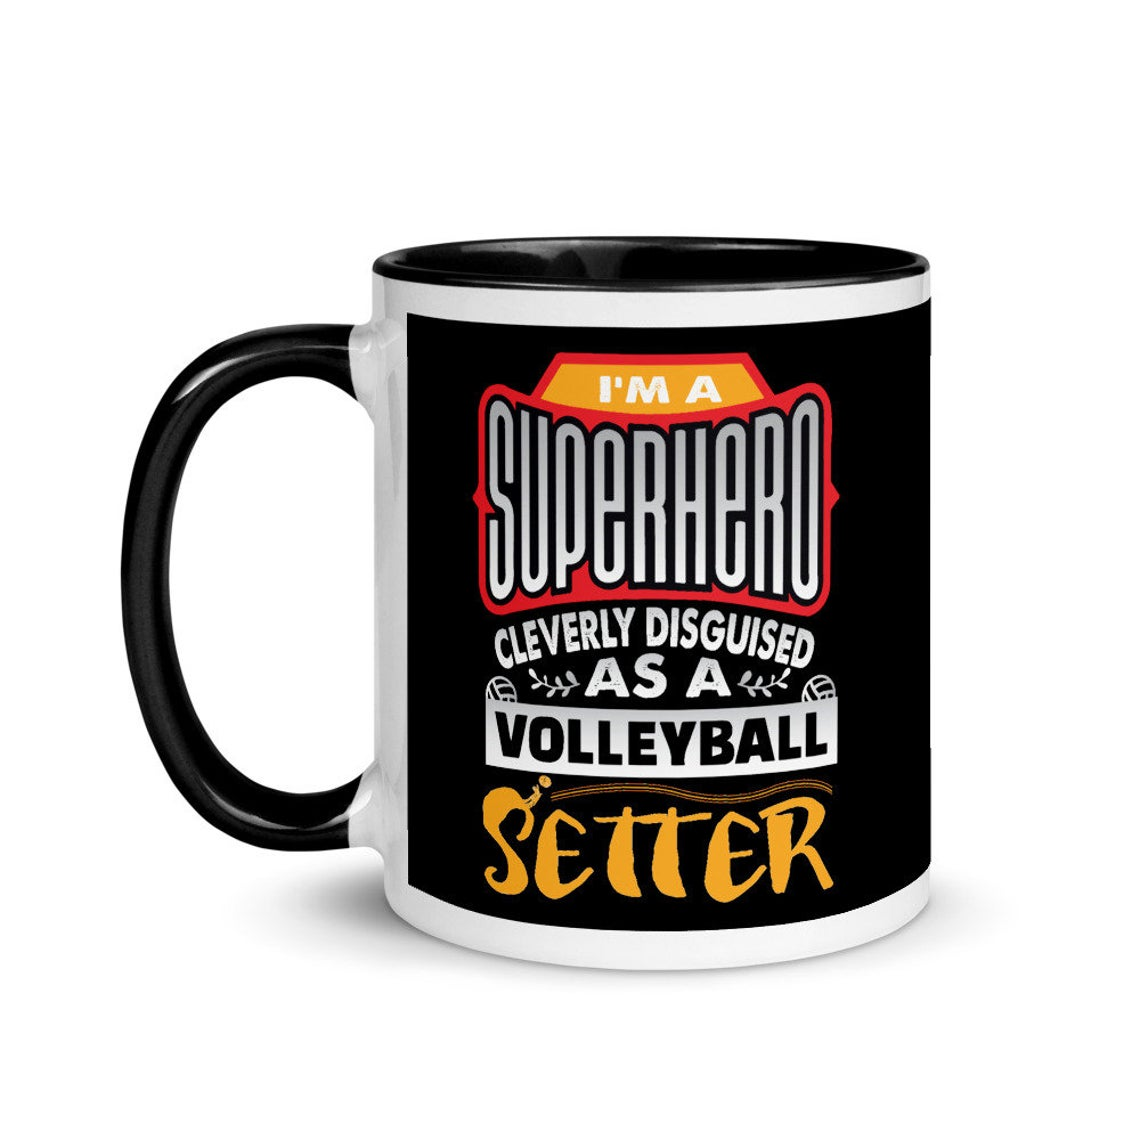 My Volleybragswag volleyball mug collection includes mugs for hitters, liberos, blockers and coaches as well as the VBS Beast Collection featuring animal players.